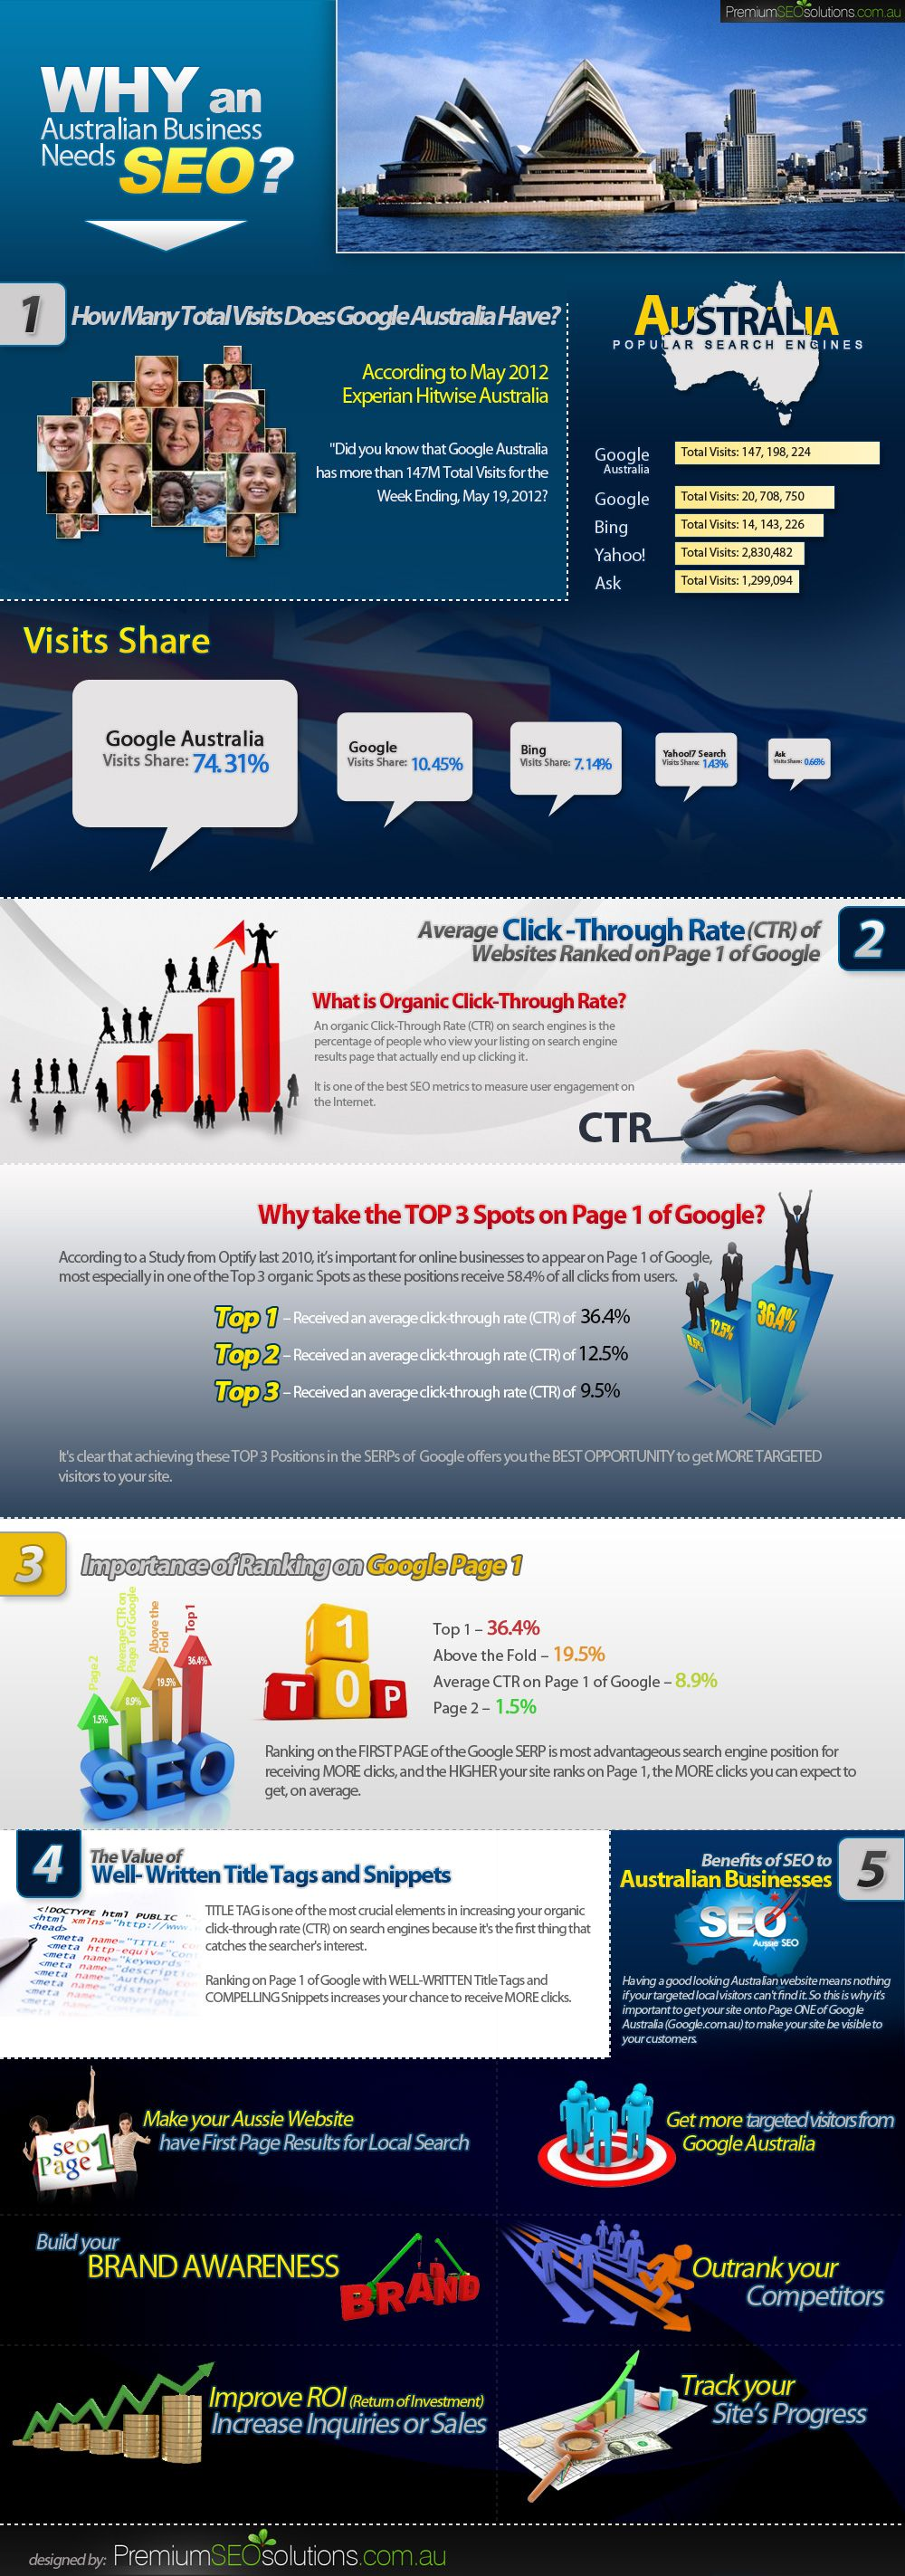 Advertising-Infographics-Importance-of-SEO-for-Australian-Businesses Advertising Infographics : Importance of SEO for Australian Businesses